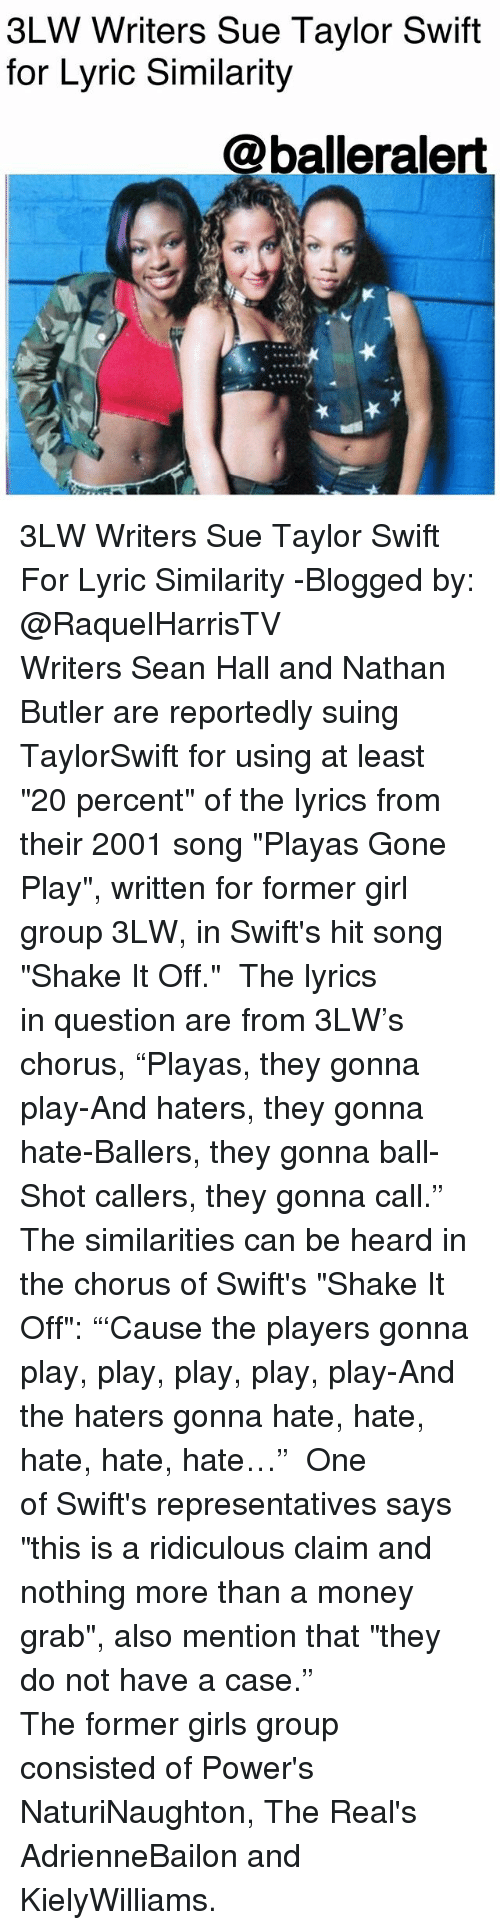 """Girls, Memes, and Money: 3LW Writers Sue Taylor Swift  for Lyric Similarity  @balleralert 3LW Writers Sue Taylor Swift For Lyric Similarity -Blogged by: @RaquelHarrisTV ⠀⠀⠀⠀⠀⠀⠀⠀⠀ Writers Sean Hall and Nathan Butler are reportedly suing TaylorSwift for using at least """"20 percent"""" of the lyrics from their 2001 song """"Playas Gone Play"""", written for former girl group 3LW, in Swift's hit song """"Shake It Off."""" ⠀⠀⠀⠀⠀⠀⠀⠀⠀ The lyrics in question are from 3LW's chorus, """"Playas, they gonna play-And haters, they gonna hate-Ballers, they gonna ball-Shot callers, they gonna call."""" The similarities can be heard in the chorus of Swift's """"Shake It Off"""": """"'Cause the players gonna play, play, play, play, play-And the haters gonna hate, hate, hate, hate, hate…"""" ⠀⠀⠀⠀⠀⠀⠀⠀⠀ One of Swift's representatives says """"this is a ridiculous claim and nothing more than a money grab"""", also mention that """"they do not have a case."""" ⠀⠀⠀⠀⠀⠀⠀⠀⠀ ⠀⠀⠀⠀⠀⠀⠀ The former girls group consisted of Power's NaturiNaughton, The Real's AdrienneBailon and KielyWilliams."""